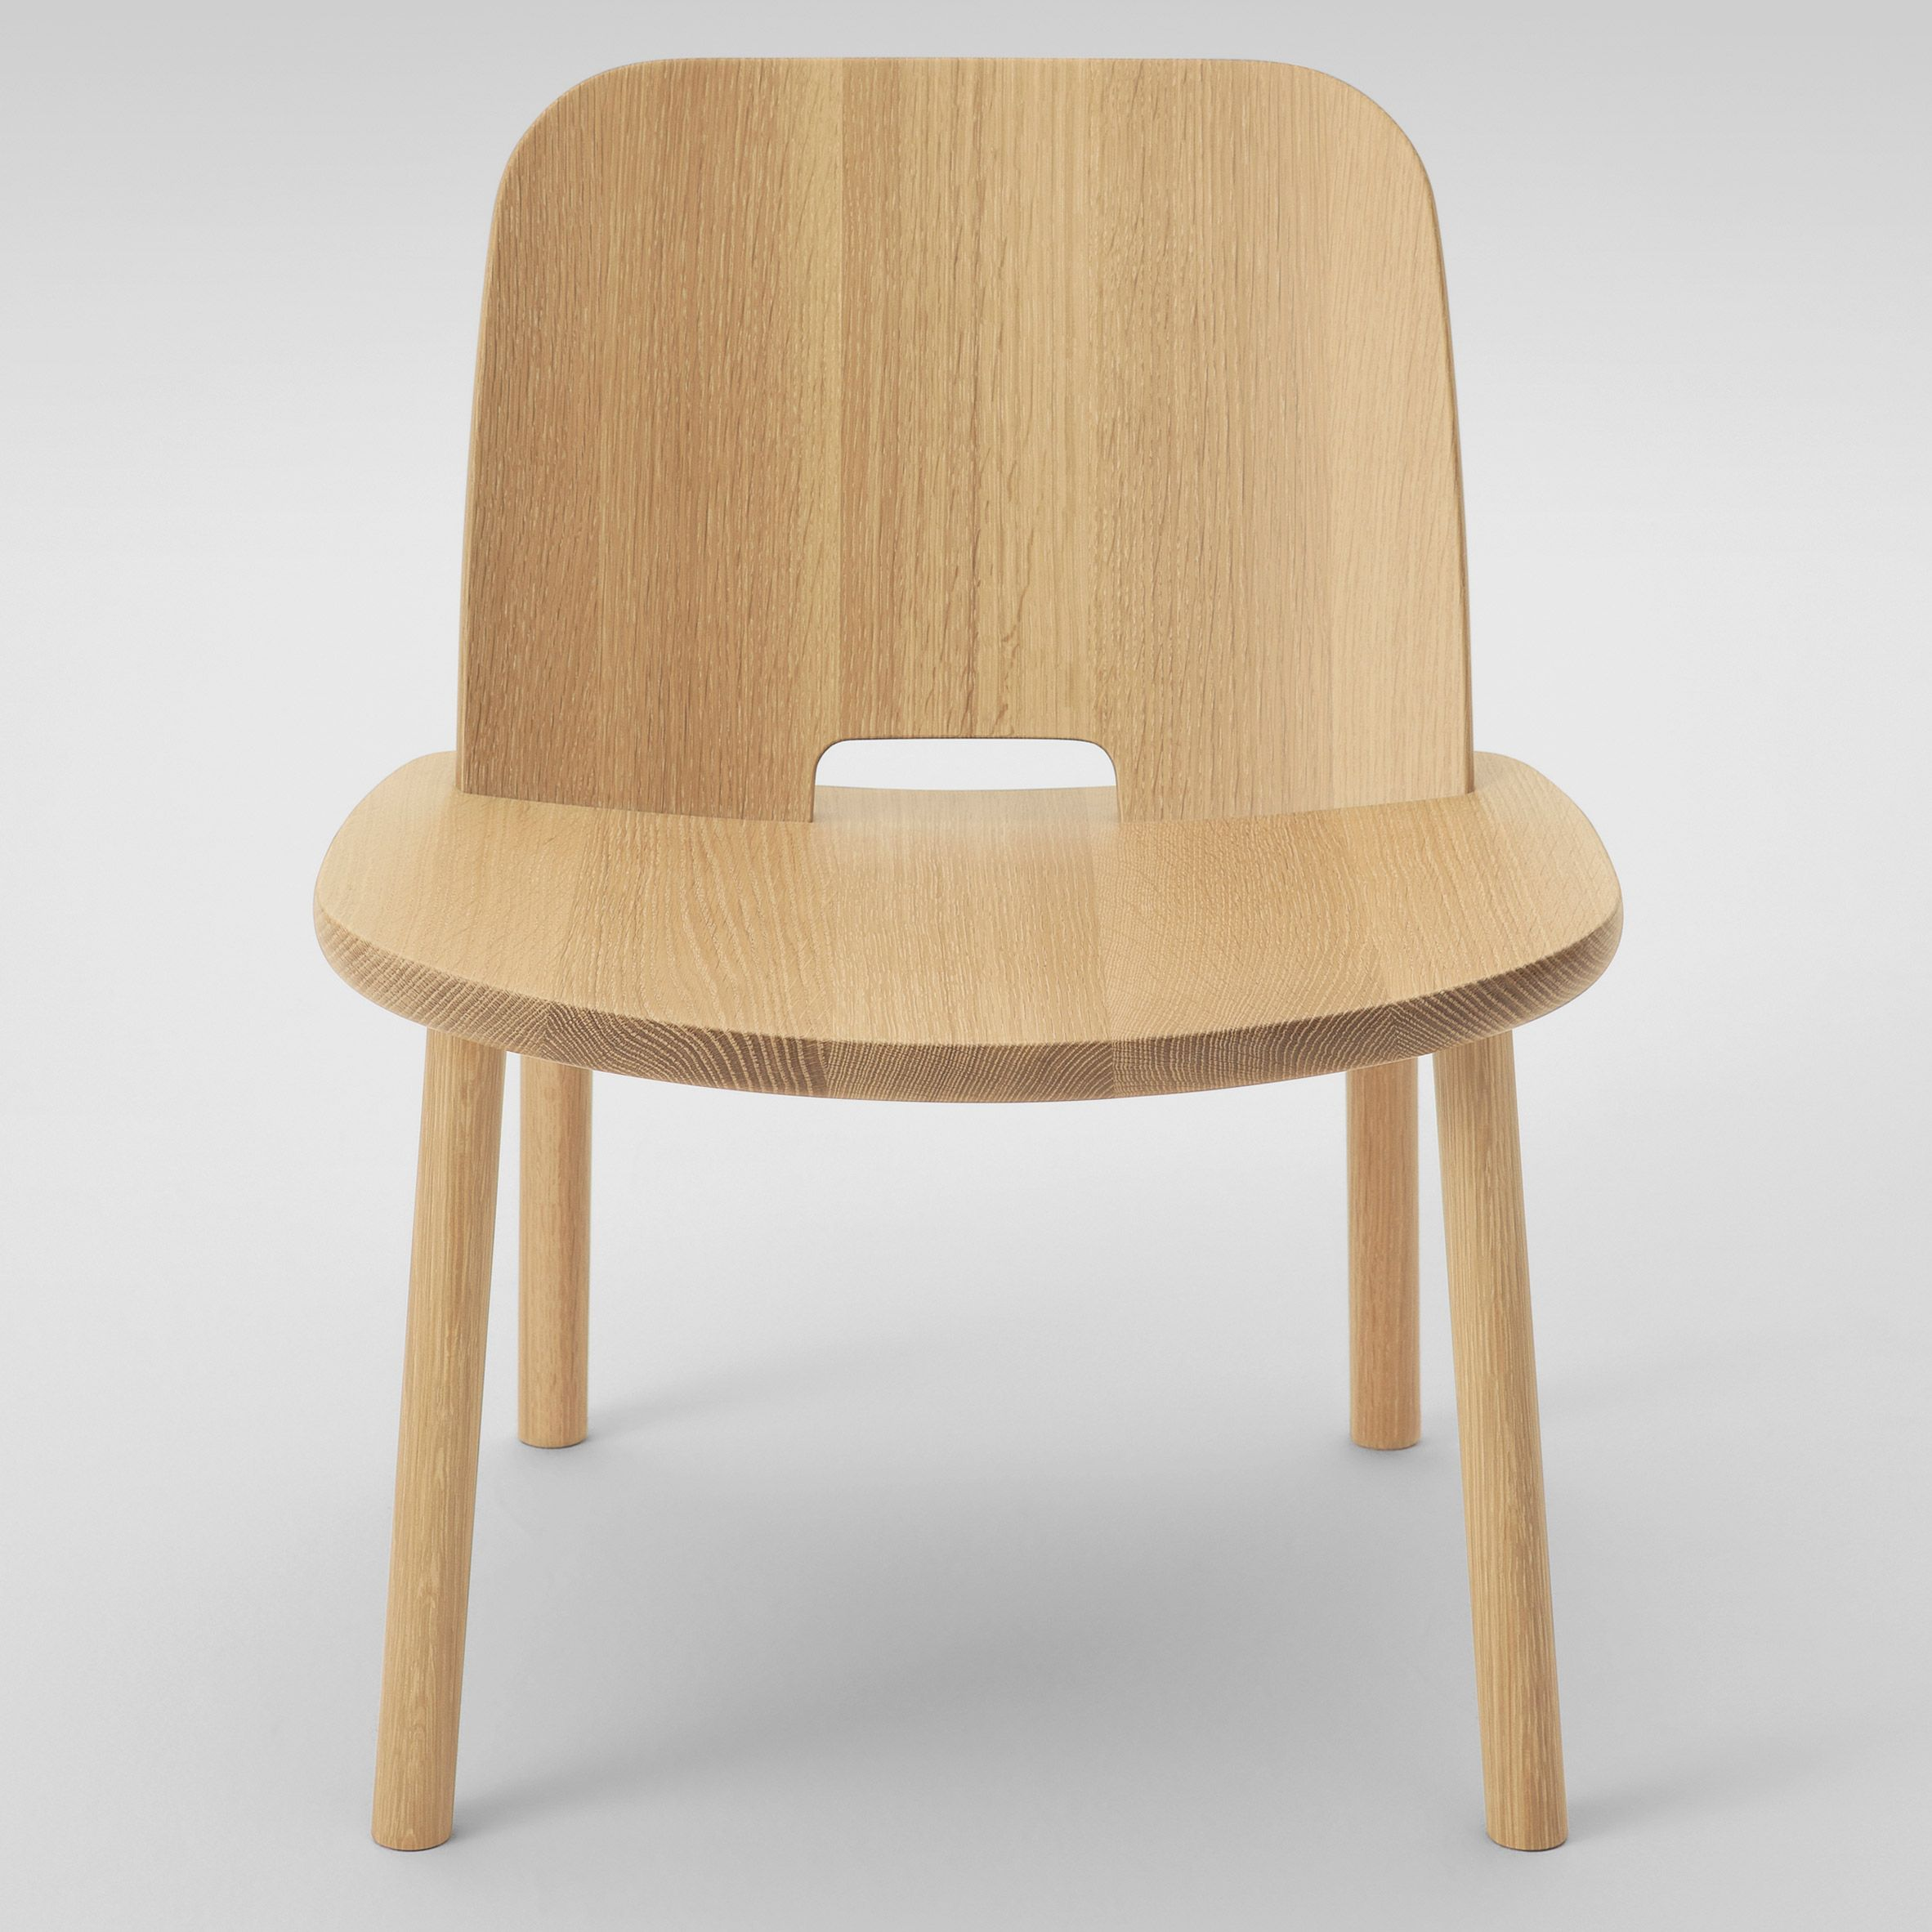 S Shaped Chair The Limited Edition T O Chair Is Made From Ash Unlike The